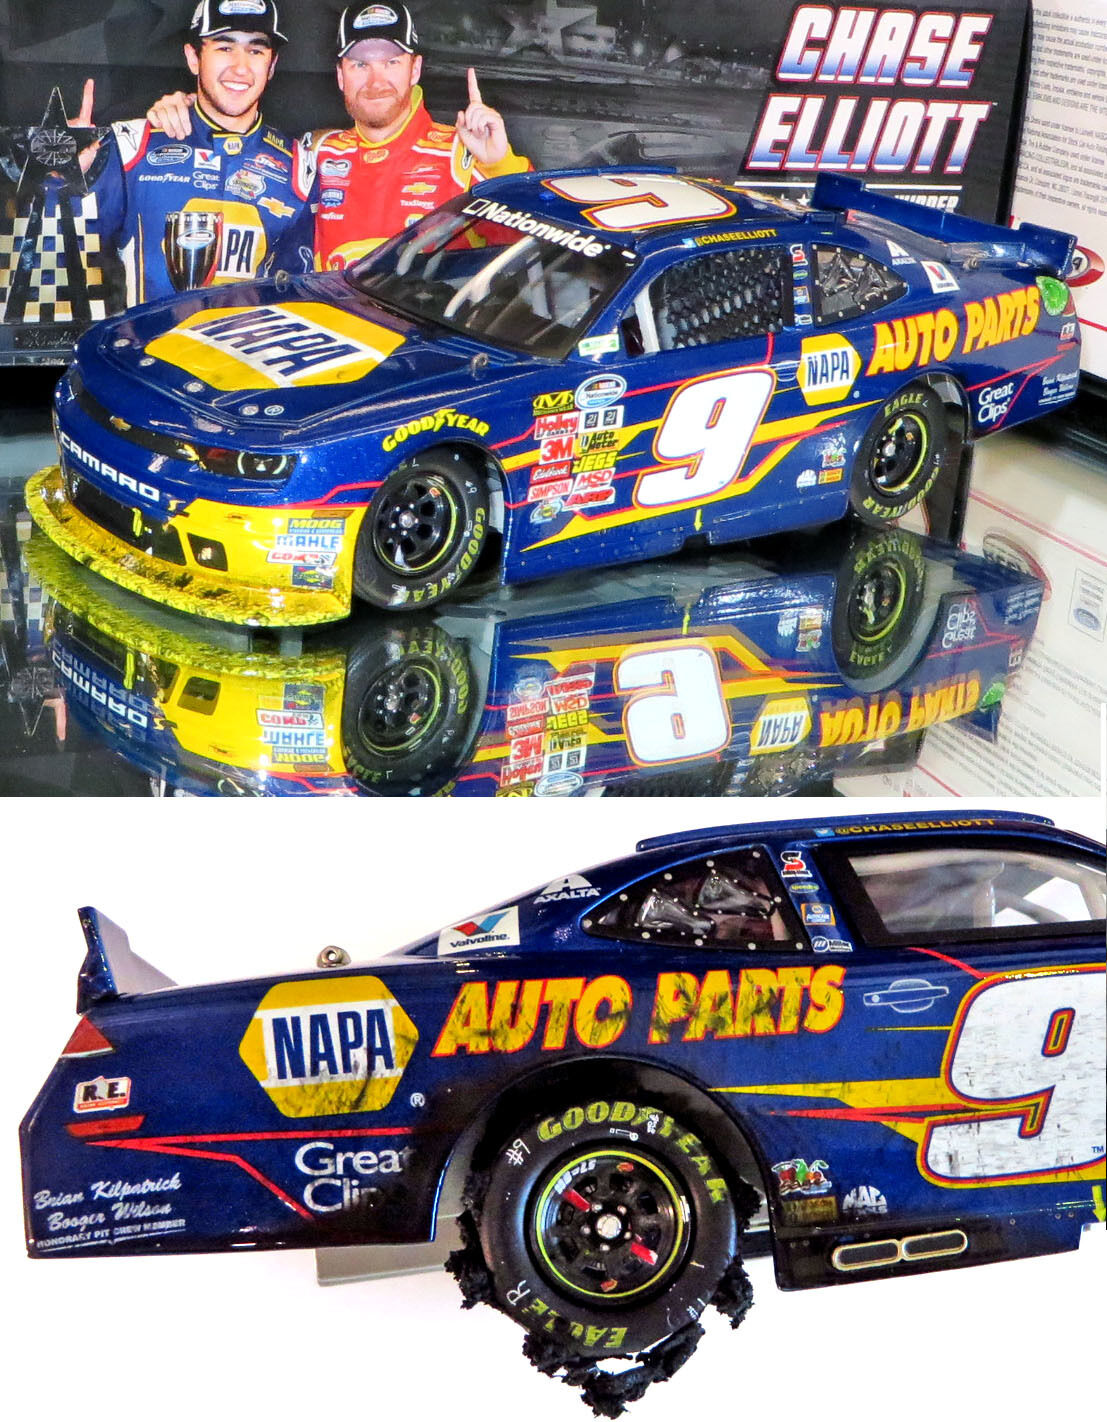 CHASE ELLIOTT 2014 TEXAS WIN RACED VERSION NAPA 1 24 SCALE ACTION NASCAR DIECAST